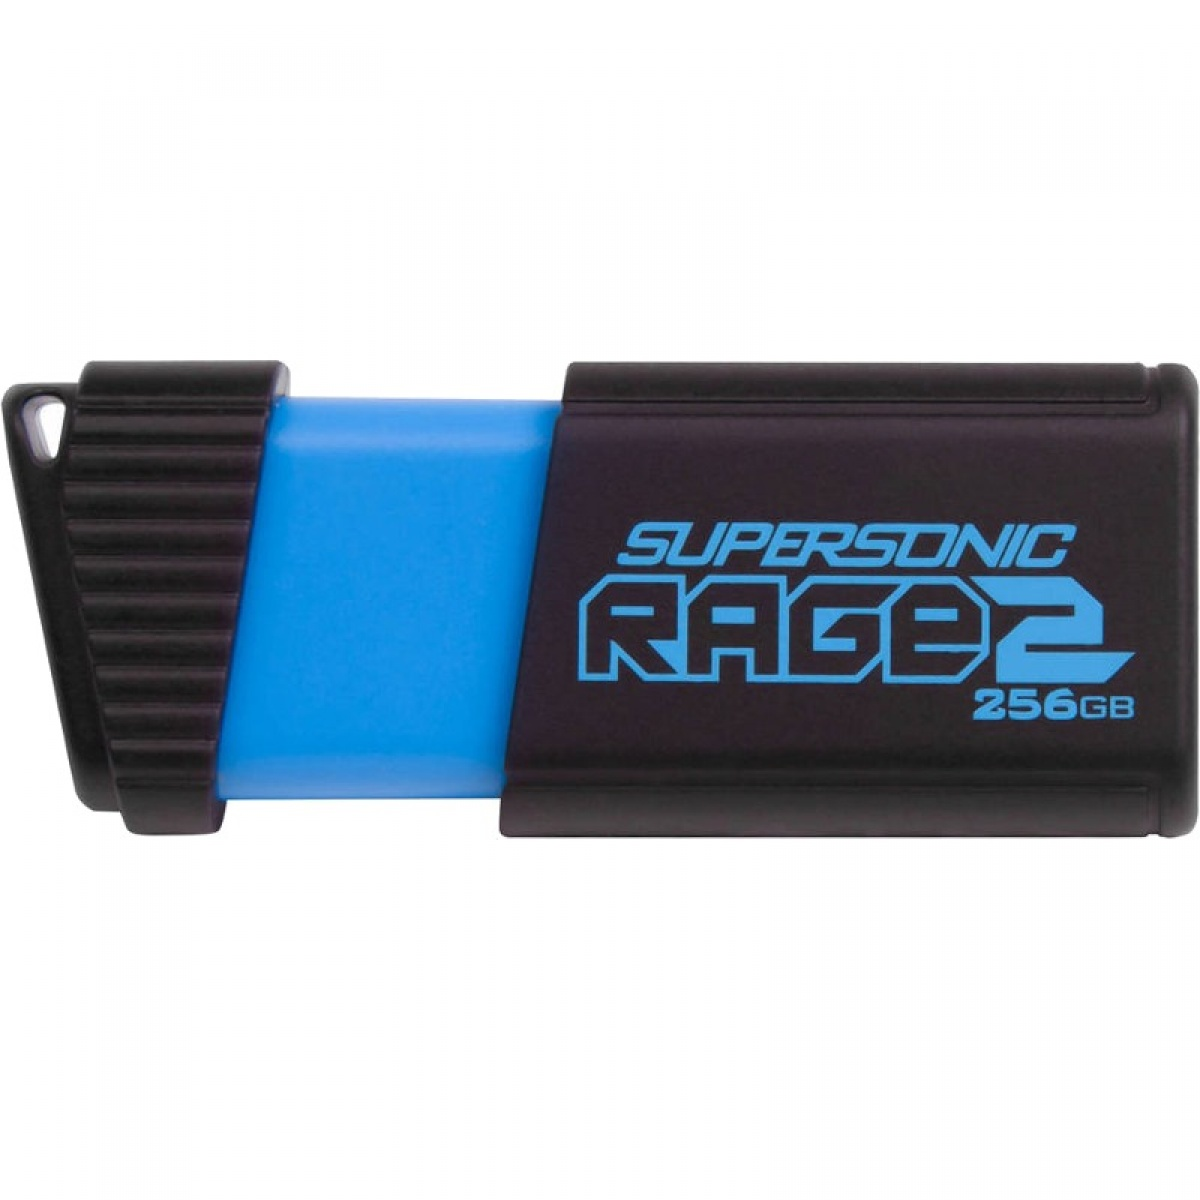 Memorie USB USB SUPERSONIC RAGE2 256GB USB 3.0